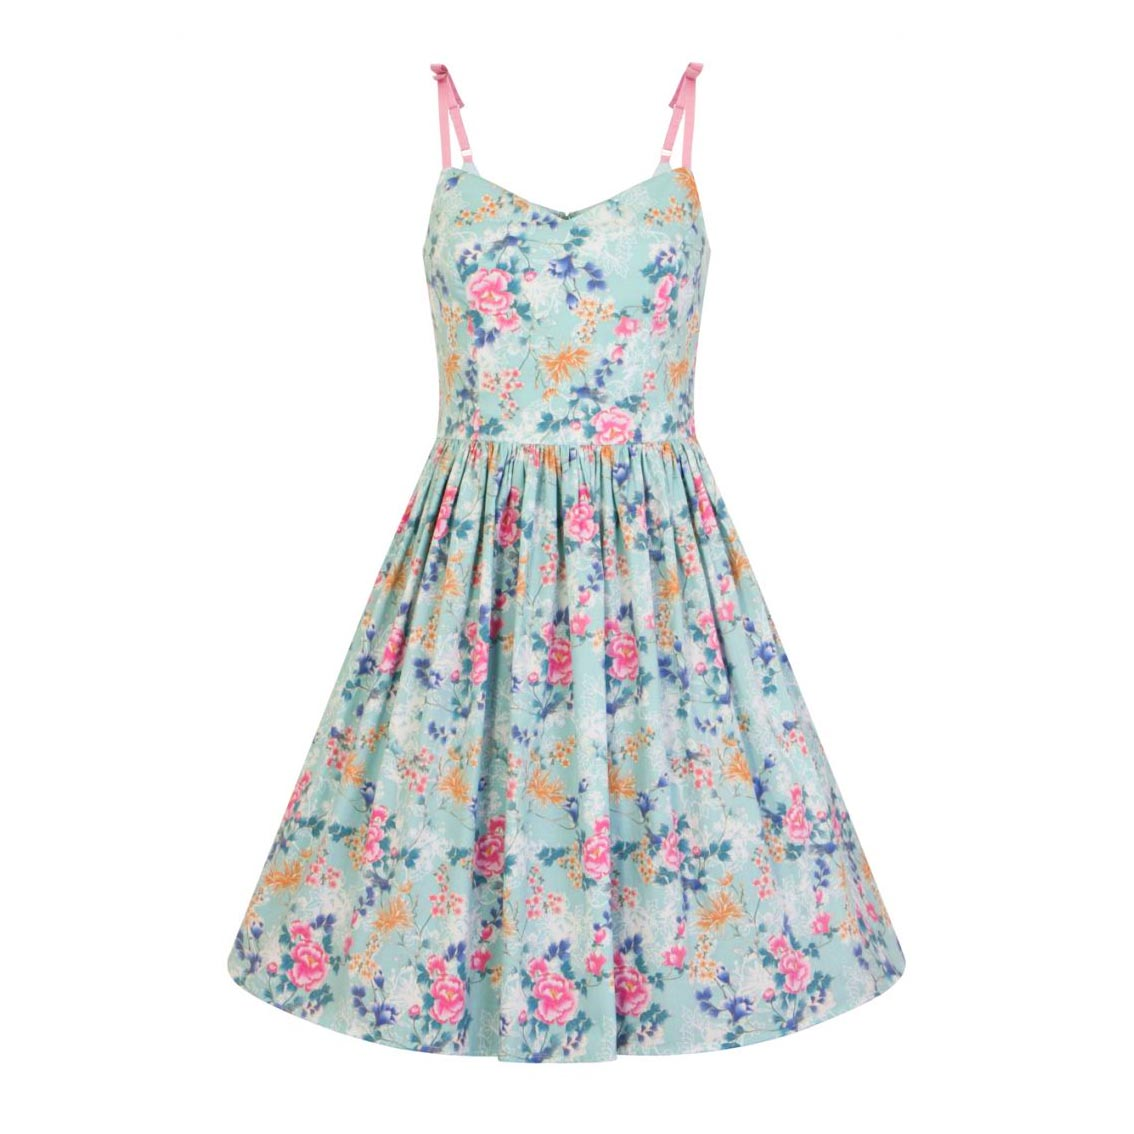 Hell-Bunny-50s-Mid-Length-Dress-Vintage-Blue-Pink-SAKURA-Flowers-Roses-All-Sizes thumbnail 33